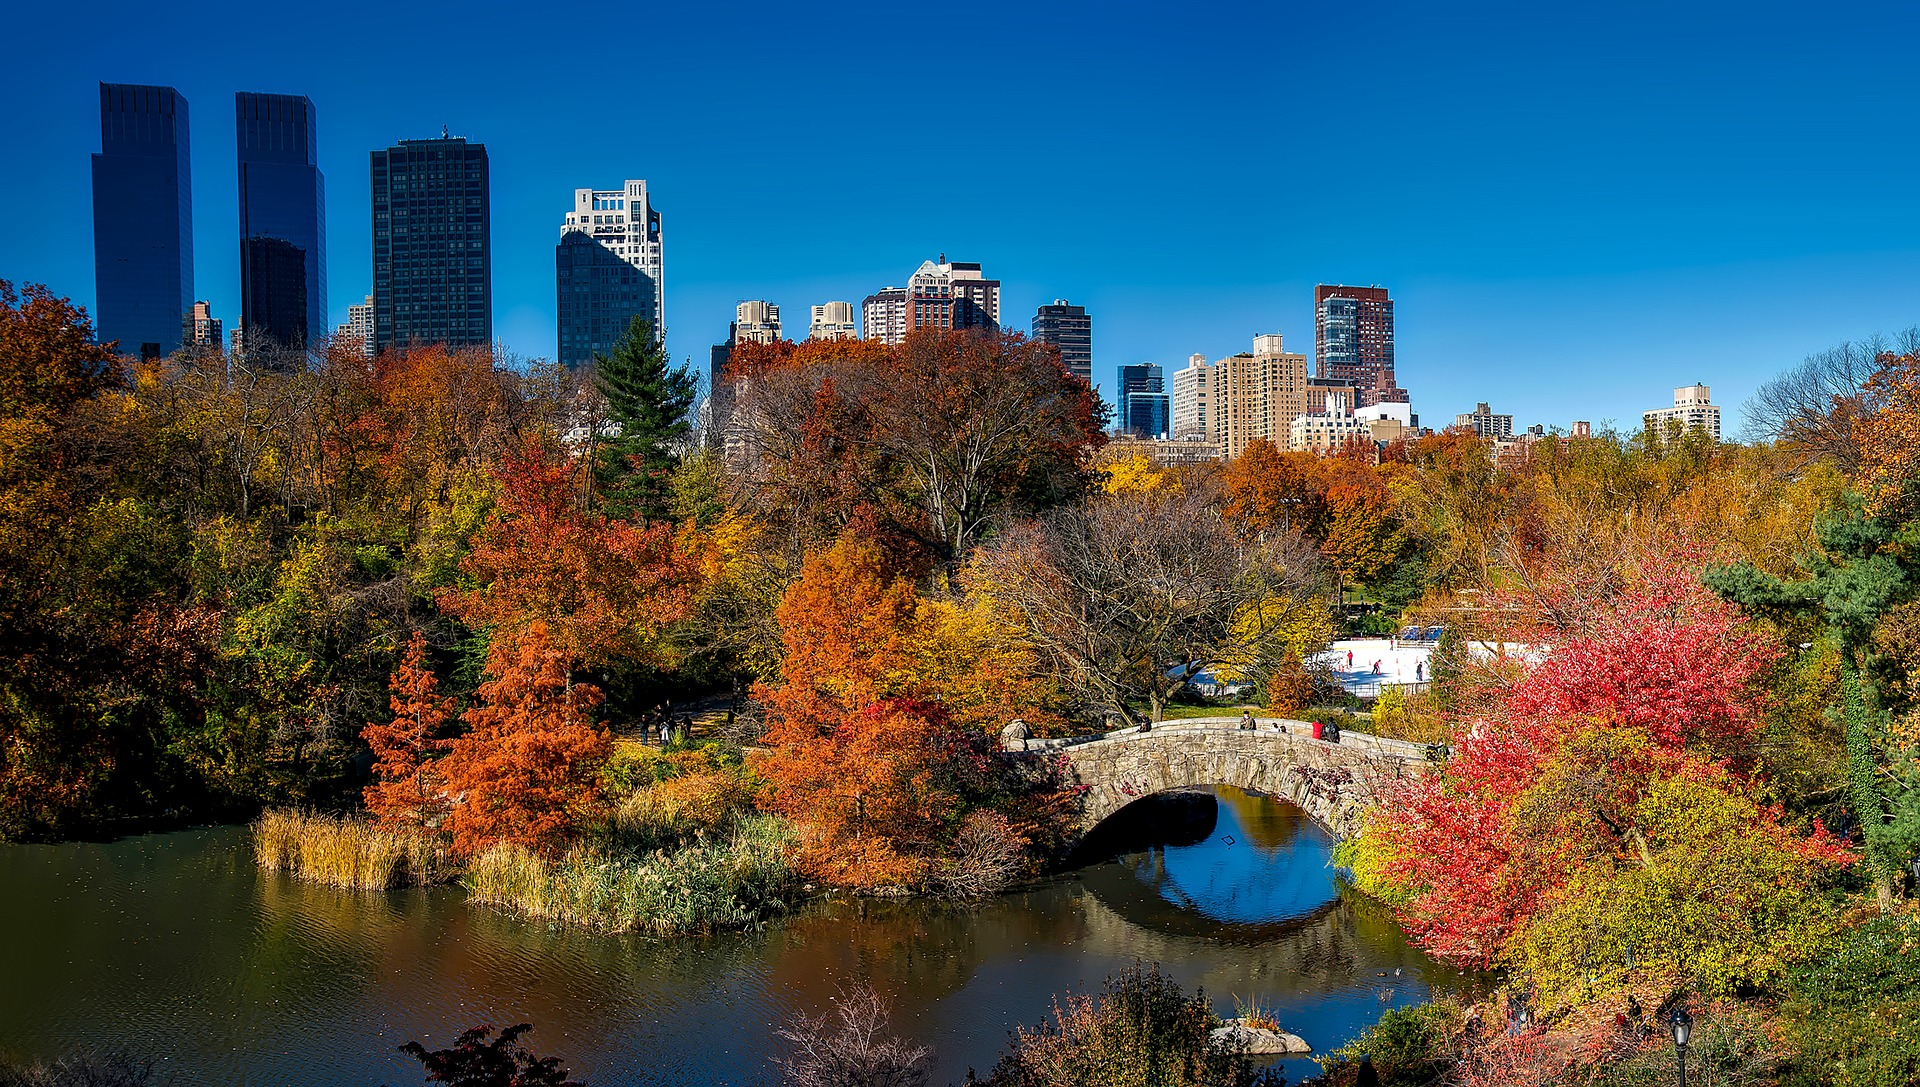 Städtereise günstig ab 446,55€ - Central Park New York City